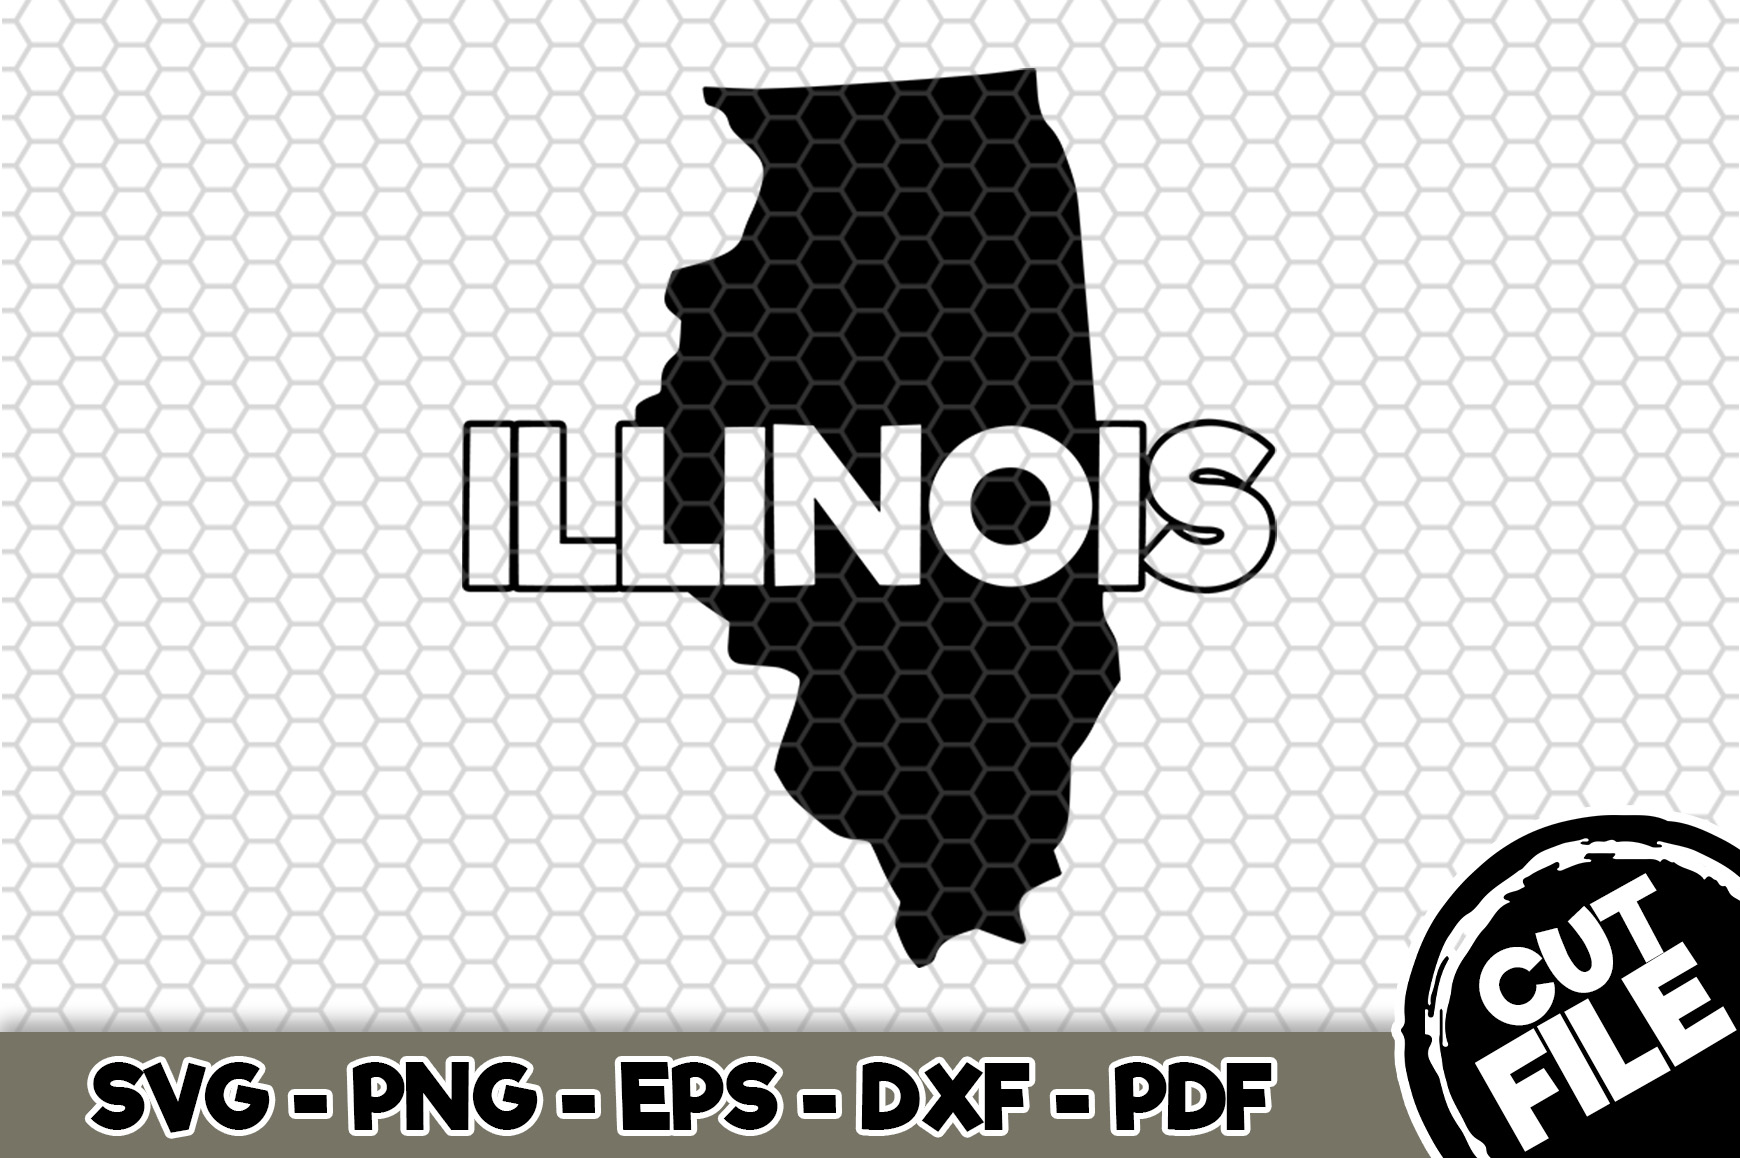 Download Free Illinois State Name Graphic By Svgexpress Creative Fabrica for Cricut Explore, Silhouette and other cutting machines.